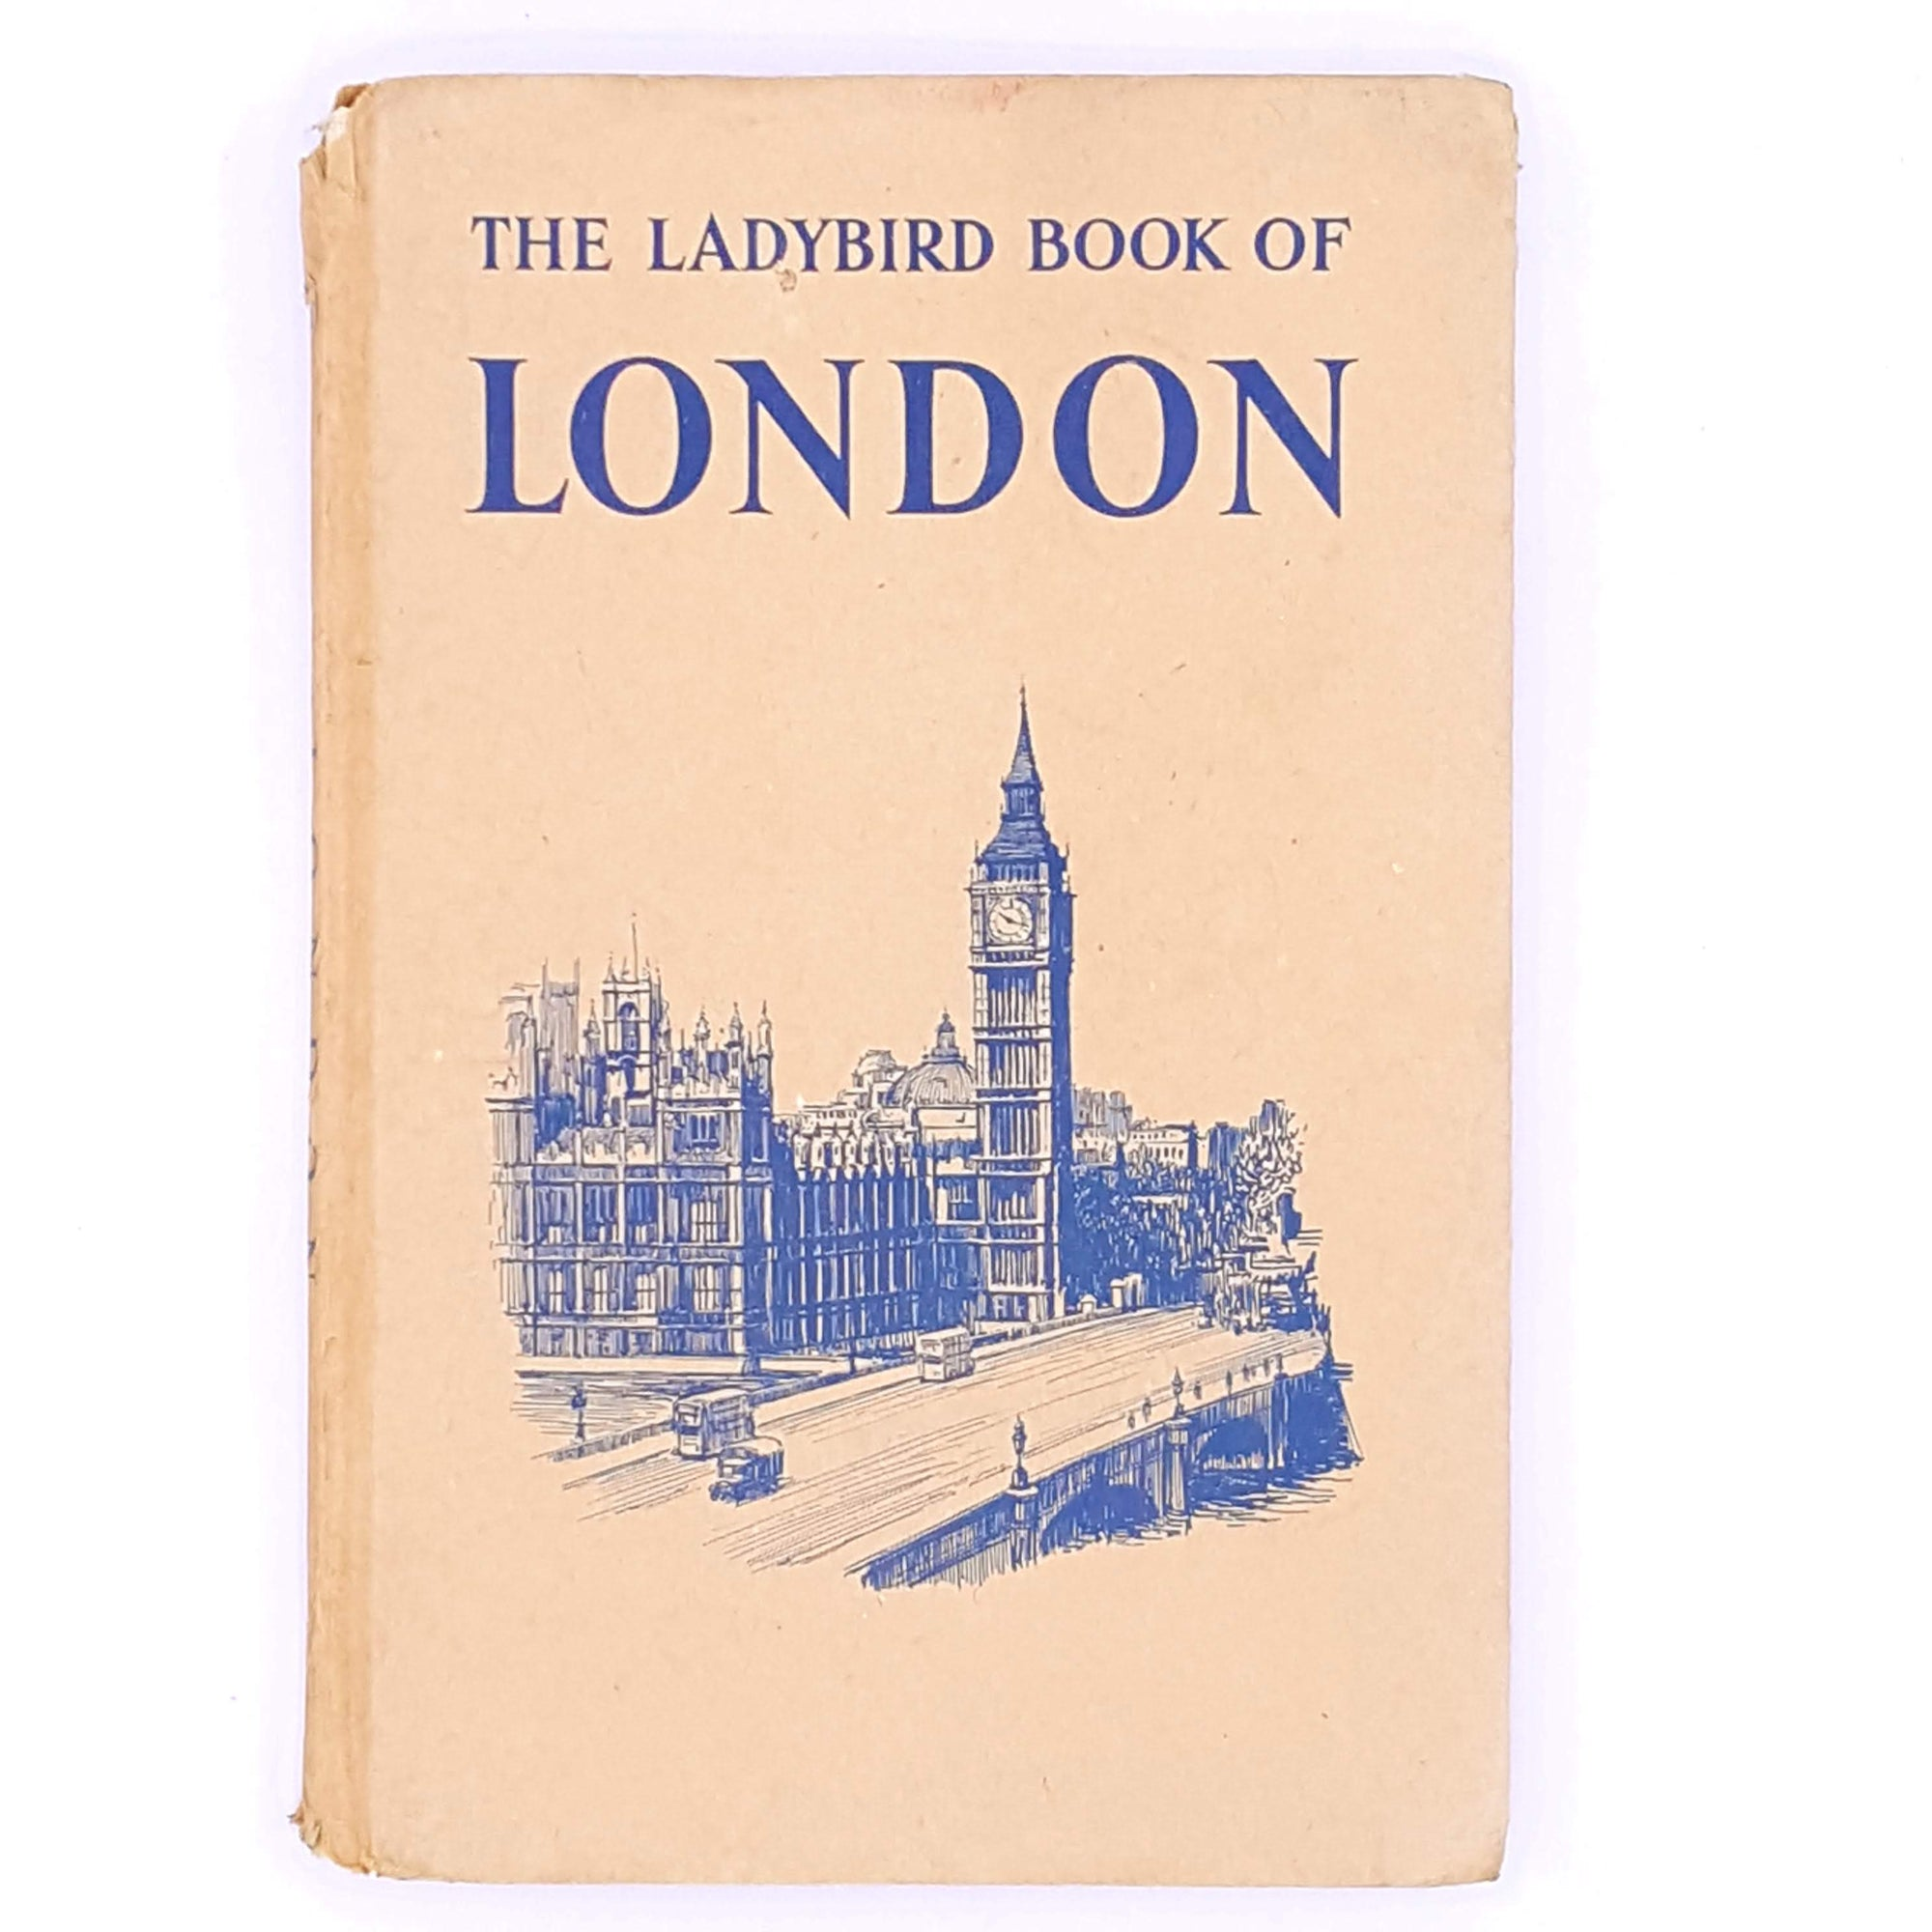 The Ladybird Book of London 1961